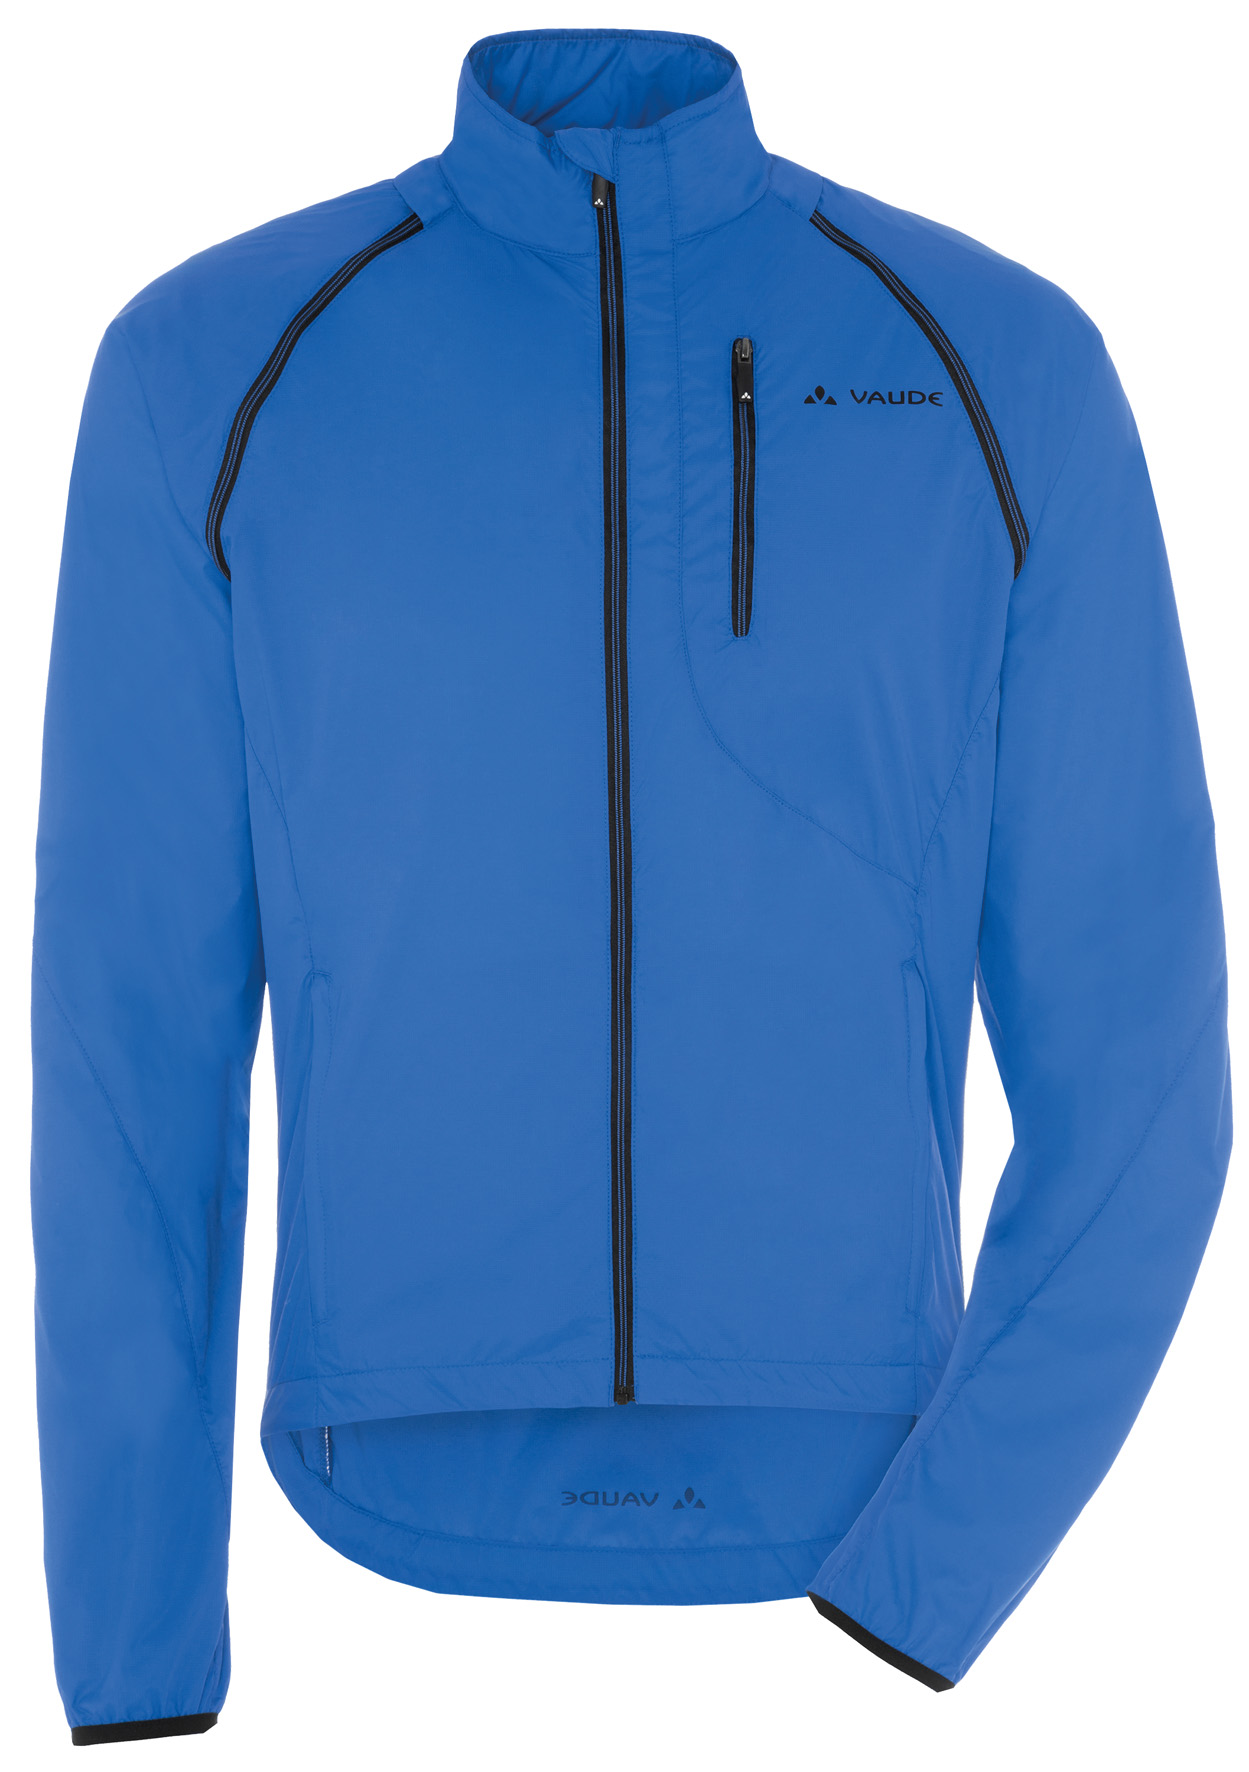 VAUDE Men´s Windoo Jacket hydro blue Größe M - schneider-sports